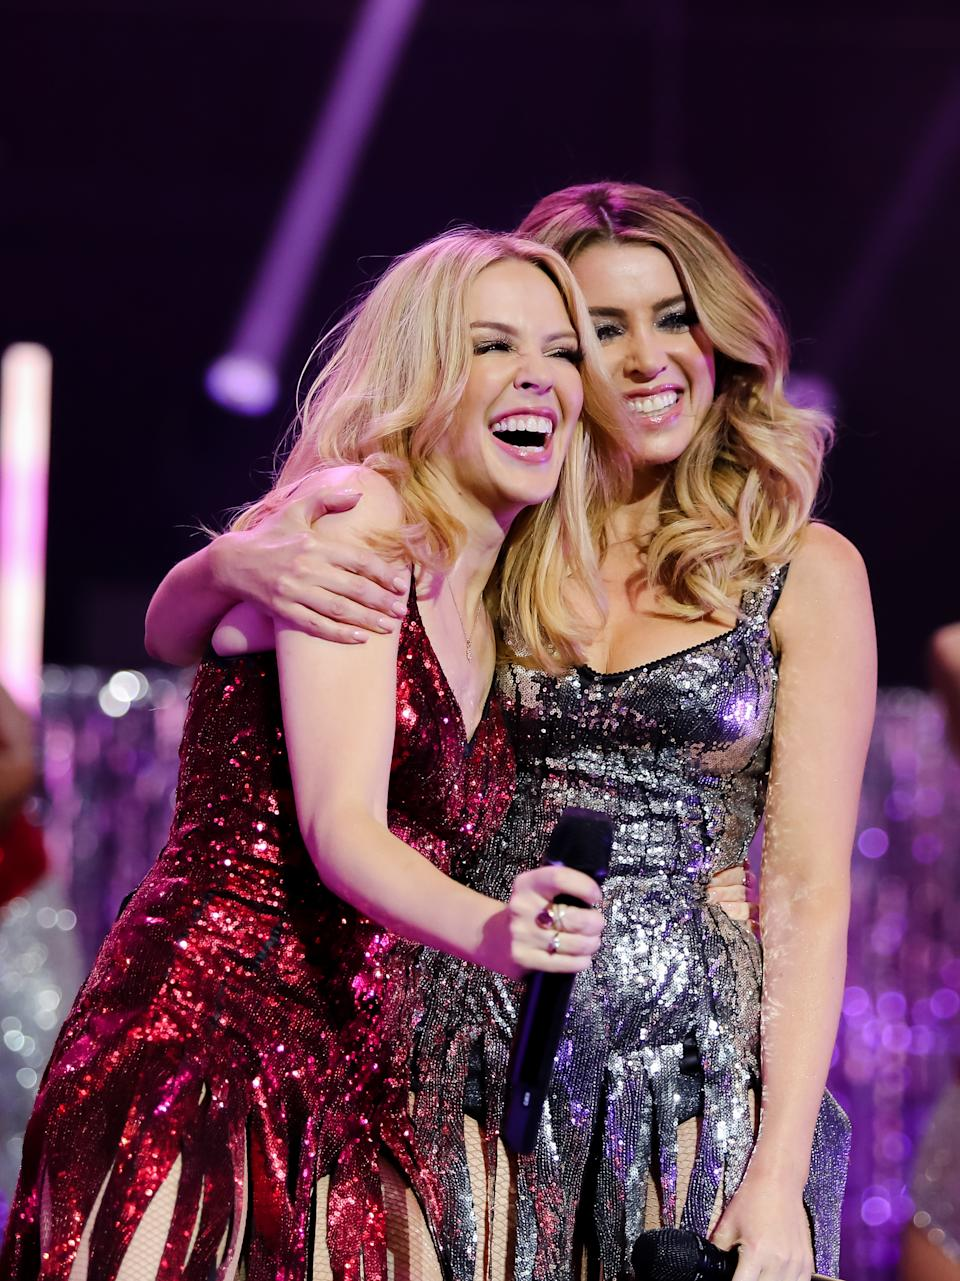 Kylie Minogue is joined by Dannii Minogue on stage during her Christmas show at the Royal Albert Hall on December 11, 2015 in London, England